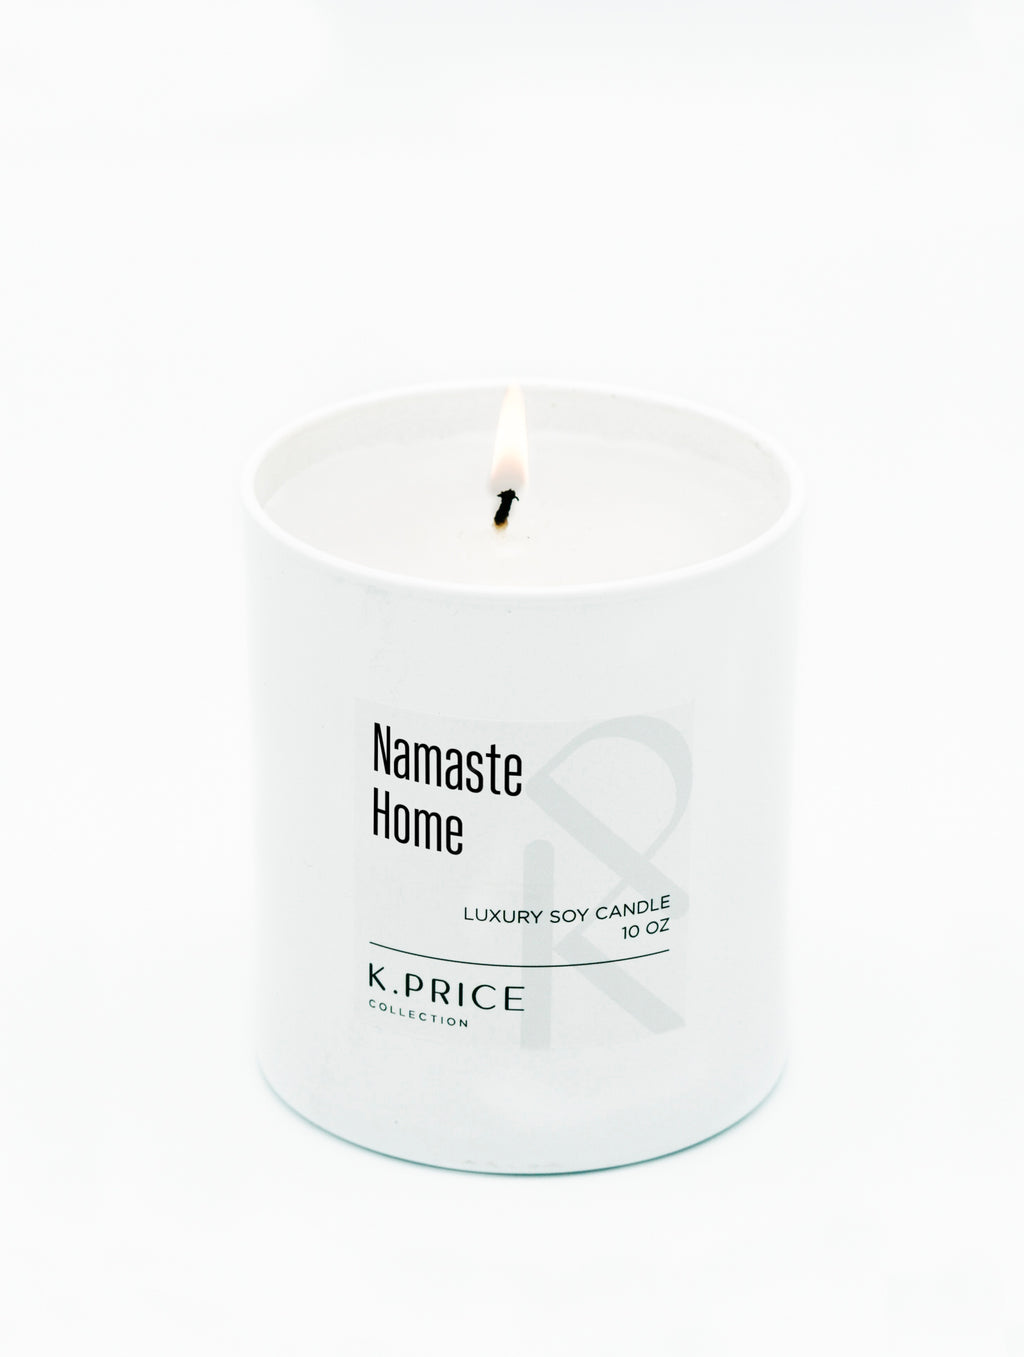 Namaste Home - 10oz Soy Candle